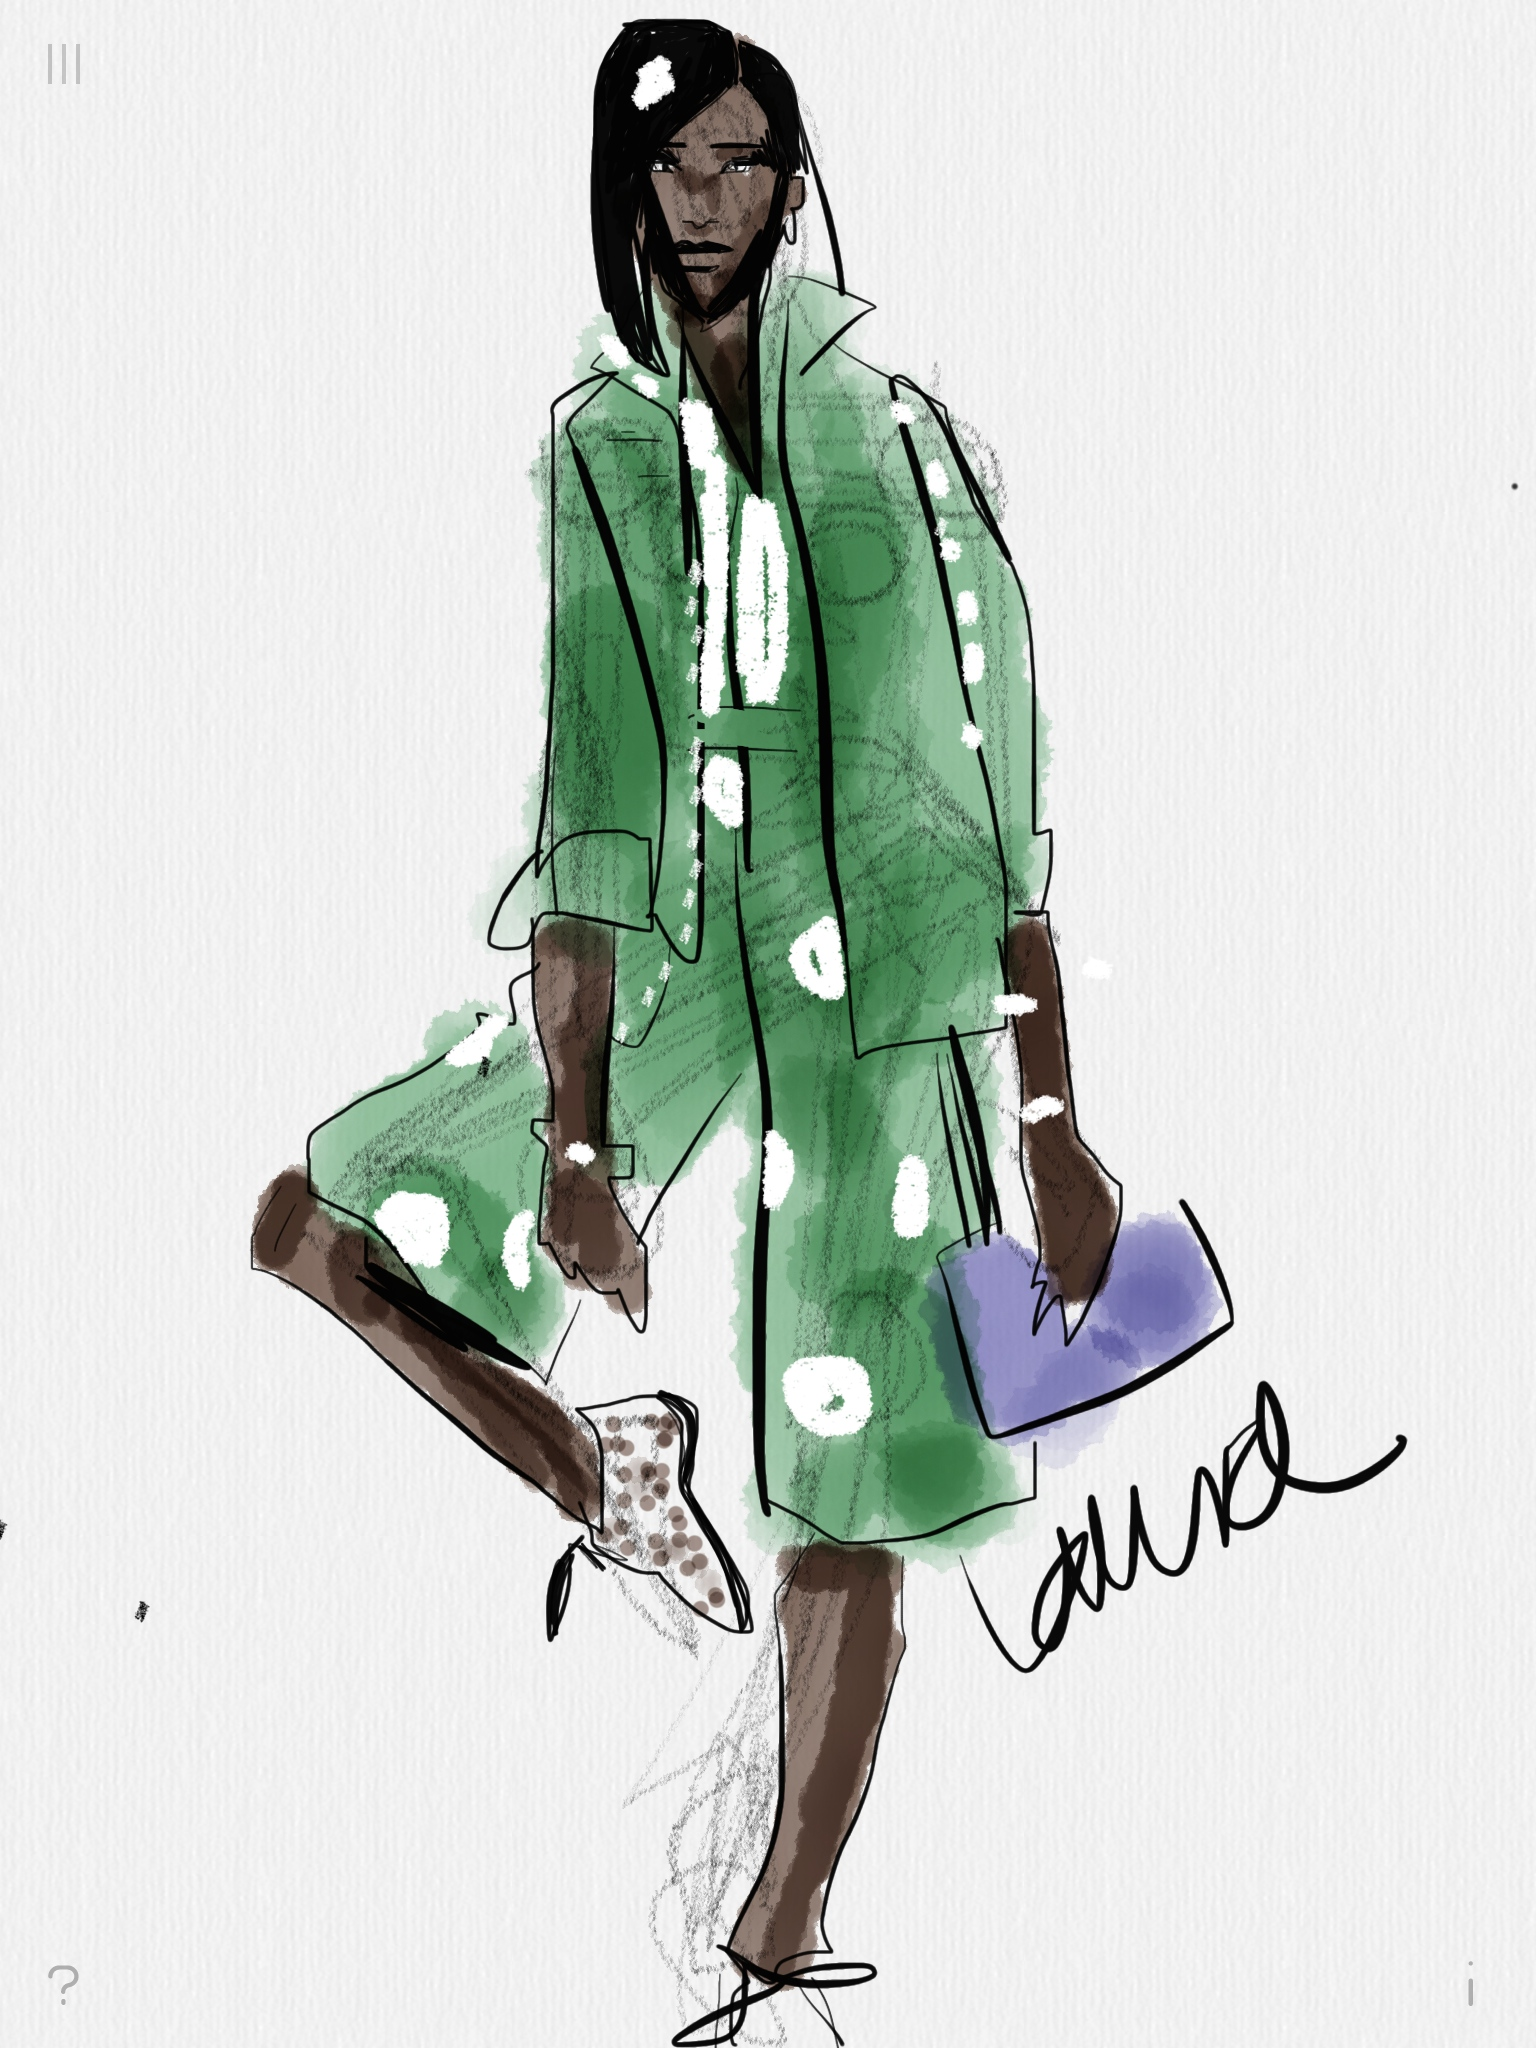 Digital fashion sketching with Tayasui Sketches app on iPad or     Digital Fashion Sketching with Tayasui Sketches